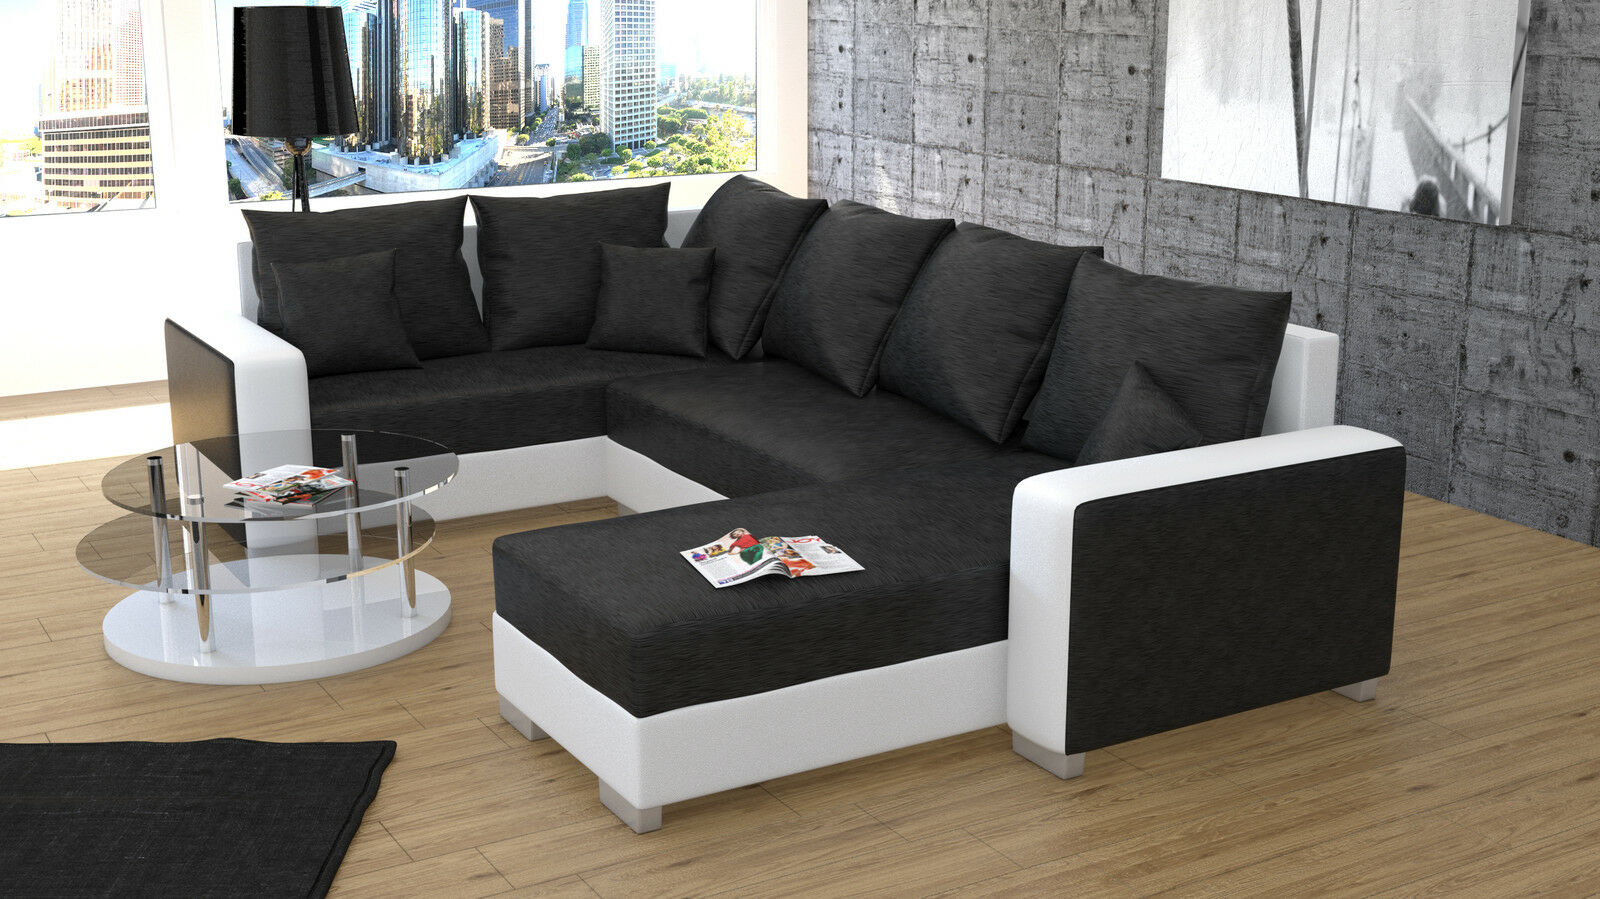 couchgarnitur ecksofa couch polster sofa palio u. Black Bedroom Furniture Sets. Home Design Ideas